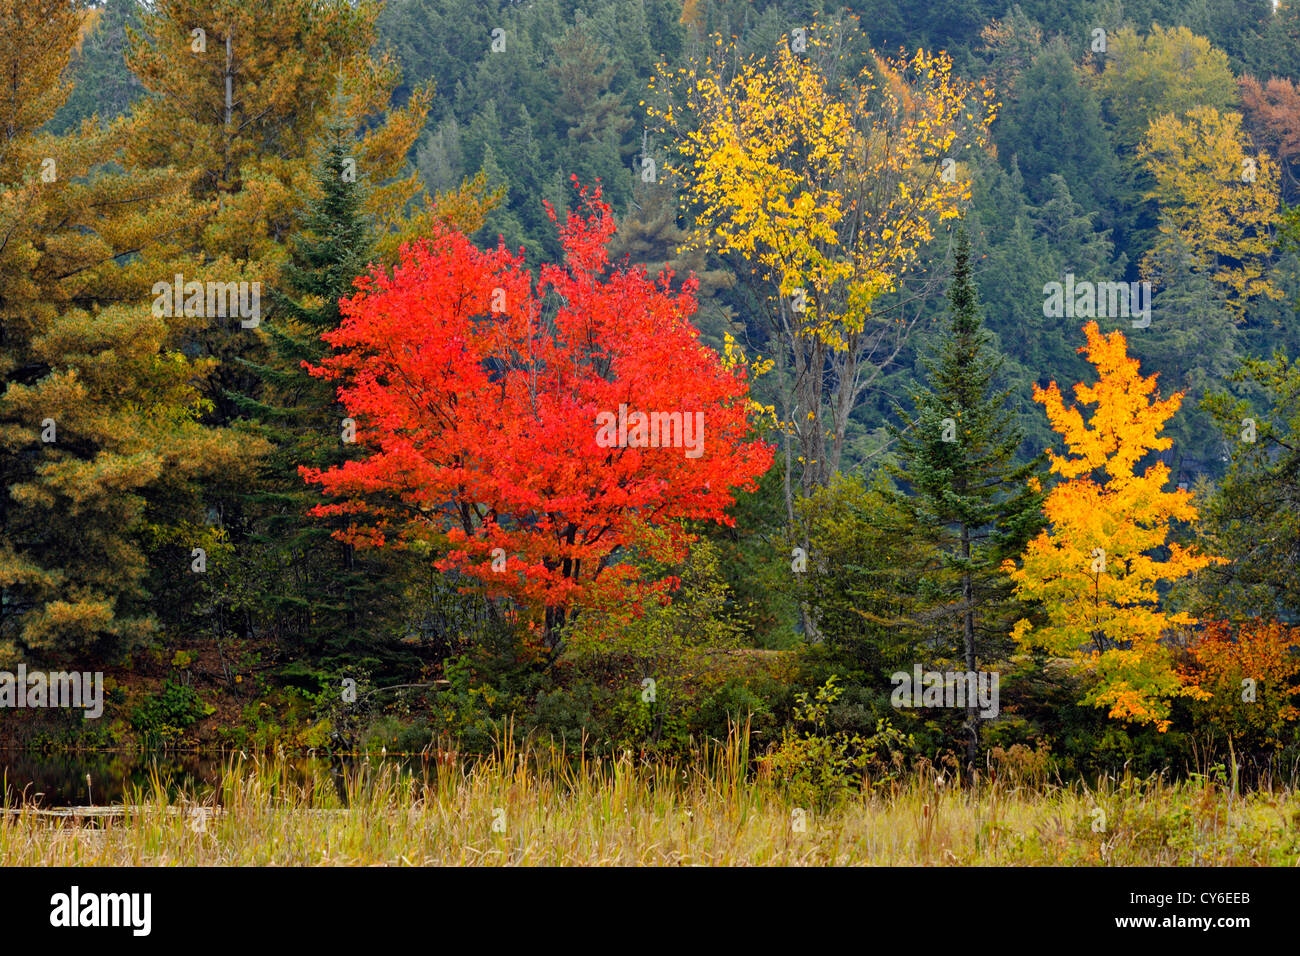 ein roter ahorn baum in herbstf rbung unter fichte und kiefer b ume algonquin provincial park. Black Bedroom Furniture Sets. Home Design Ideas